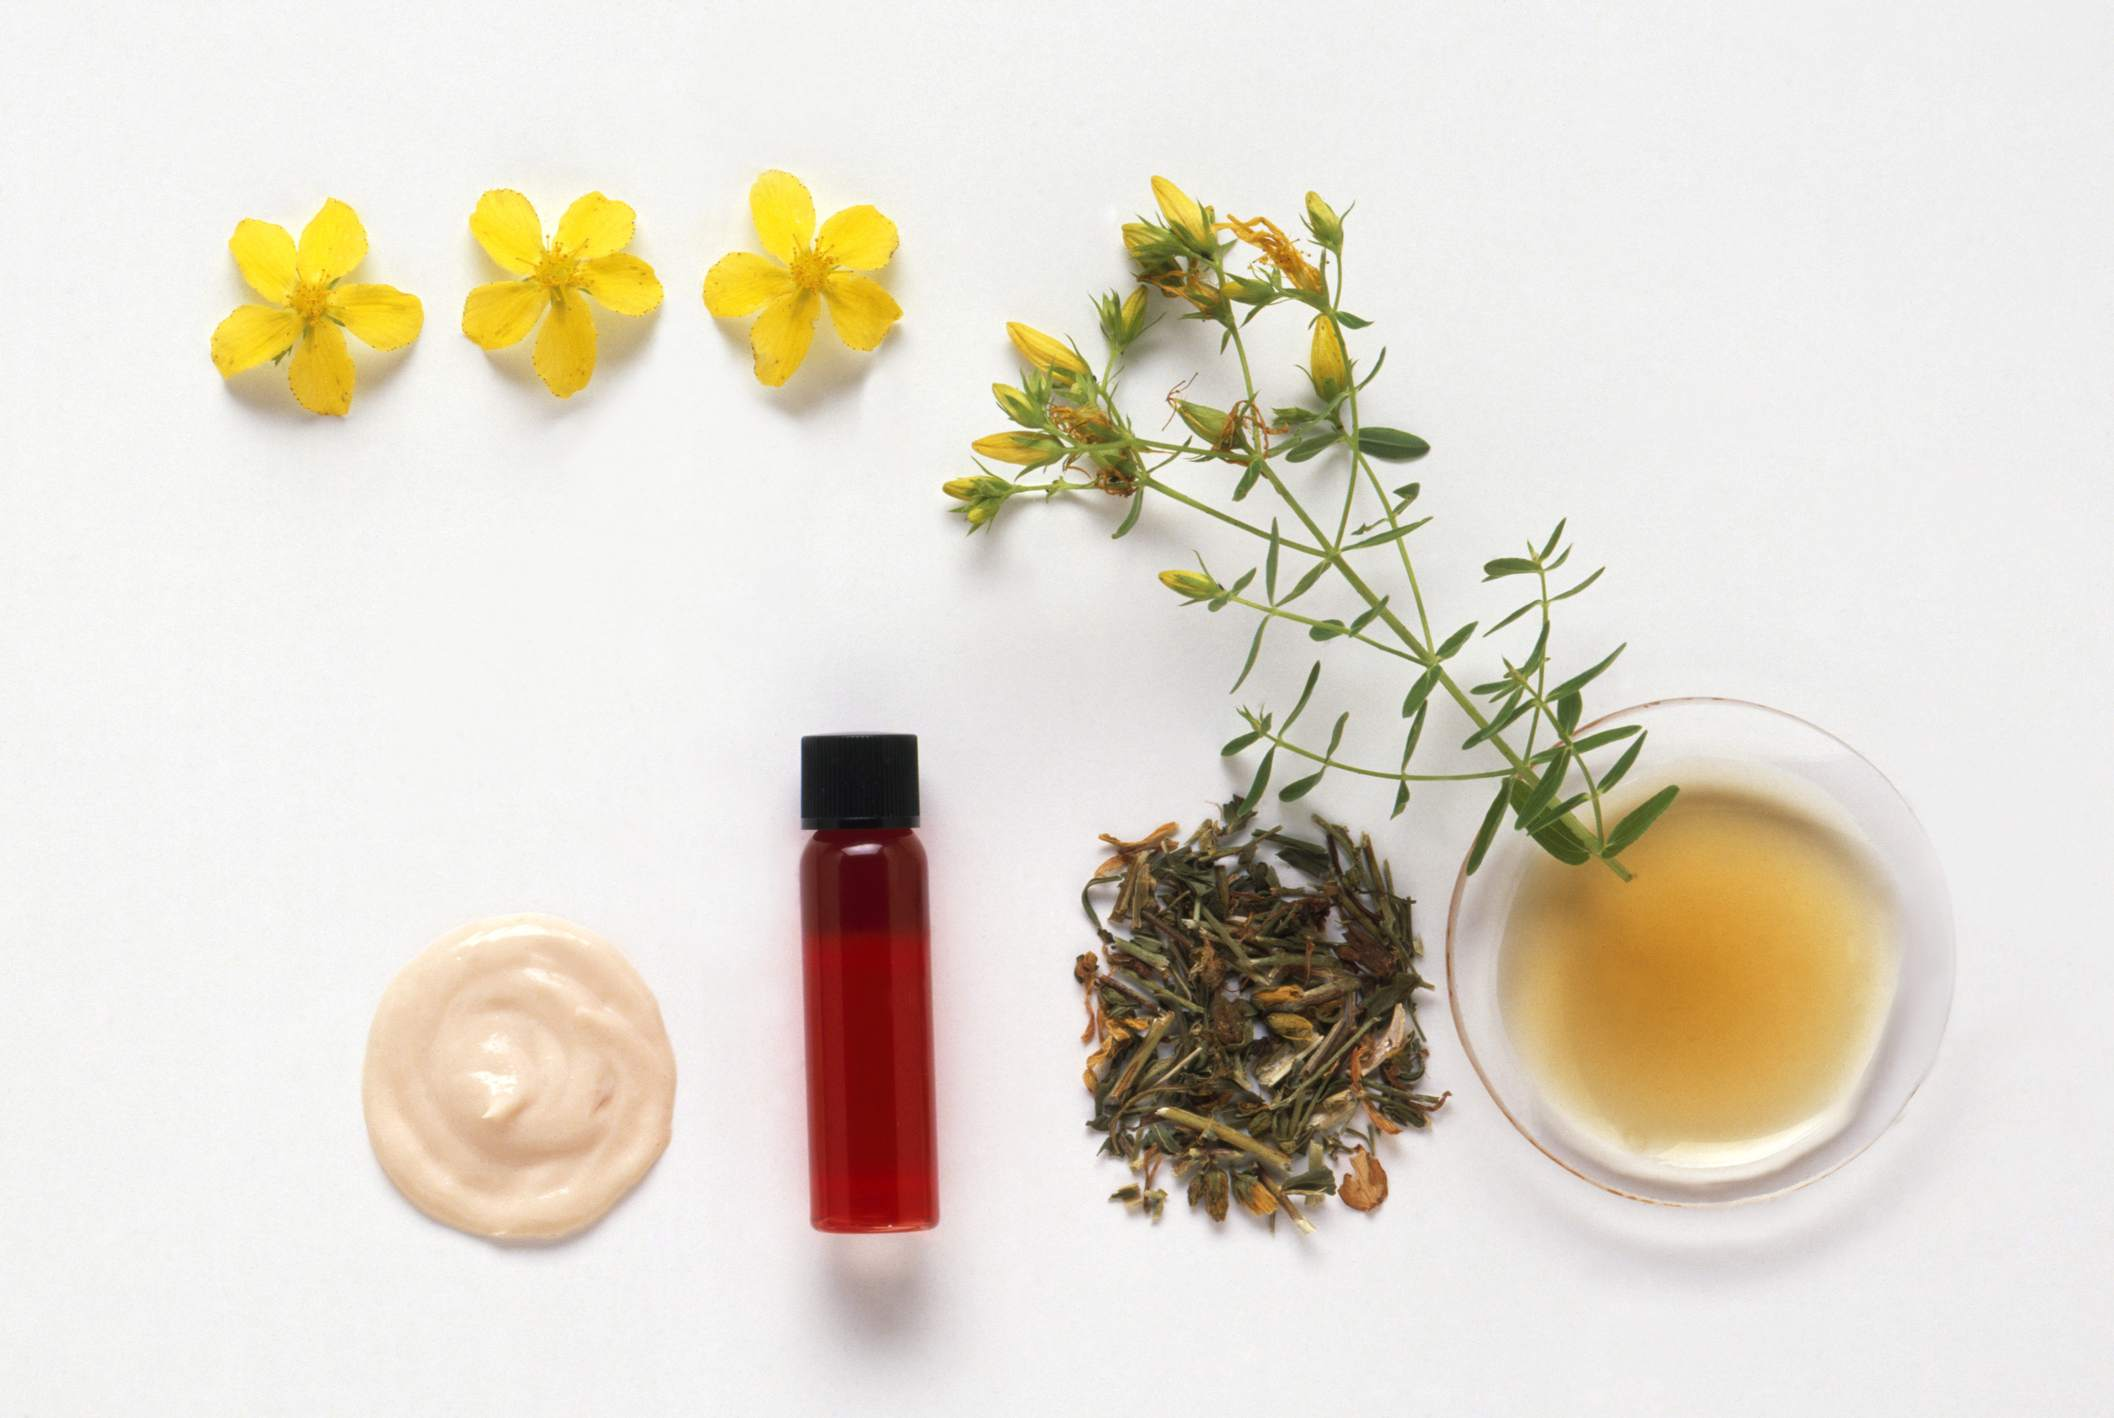 Hypericum perforatum (St John's wort), flowers, cream, infused oil in phial, fresh and dried aerial parts, and tincture in petri dish